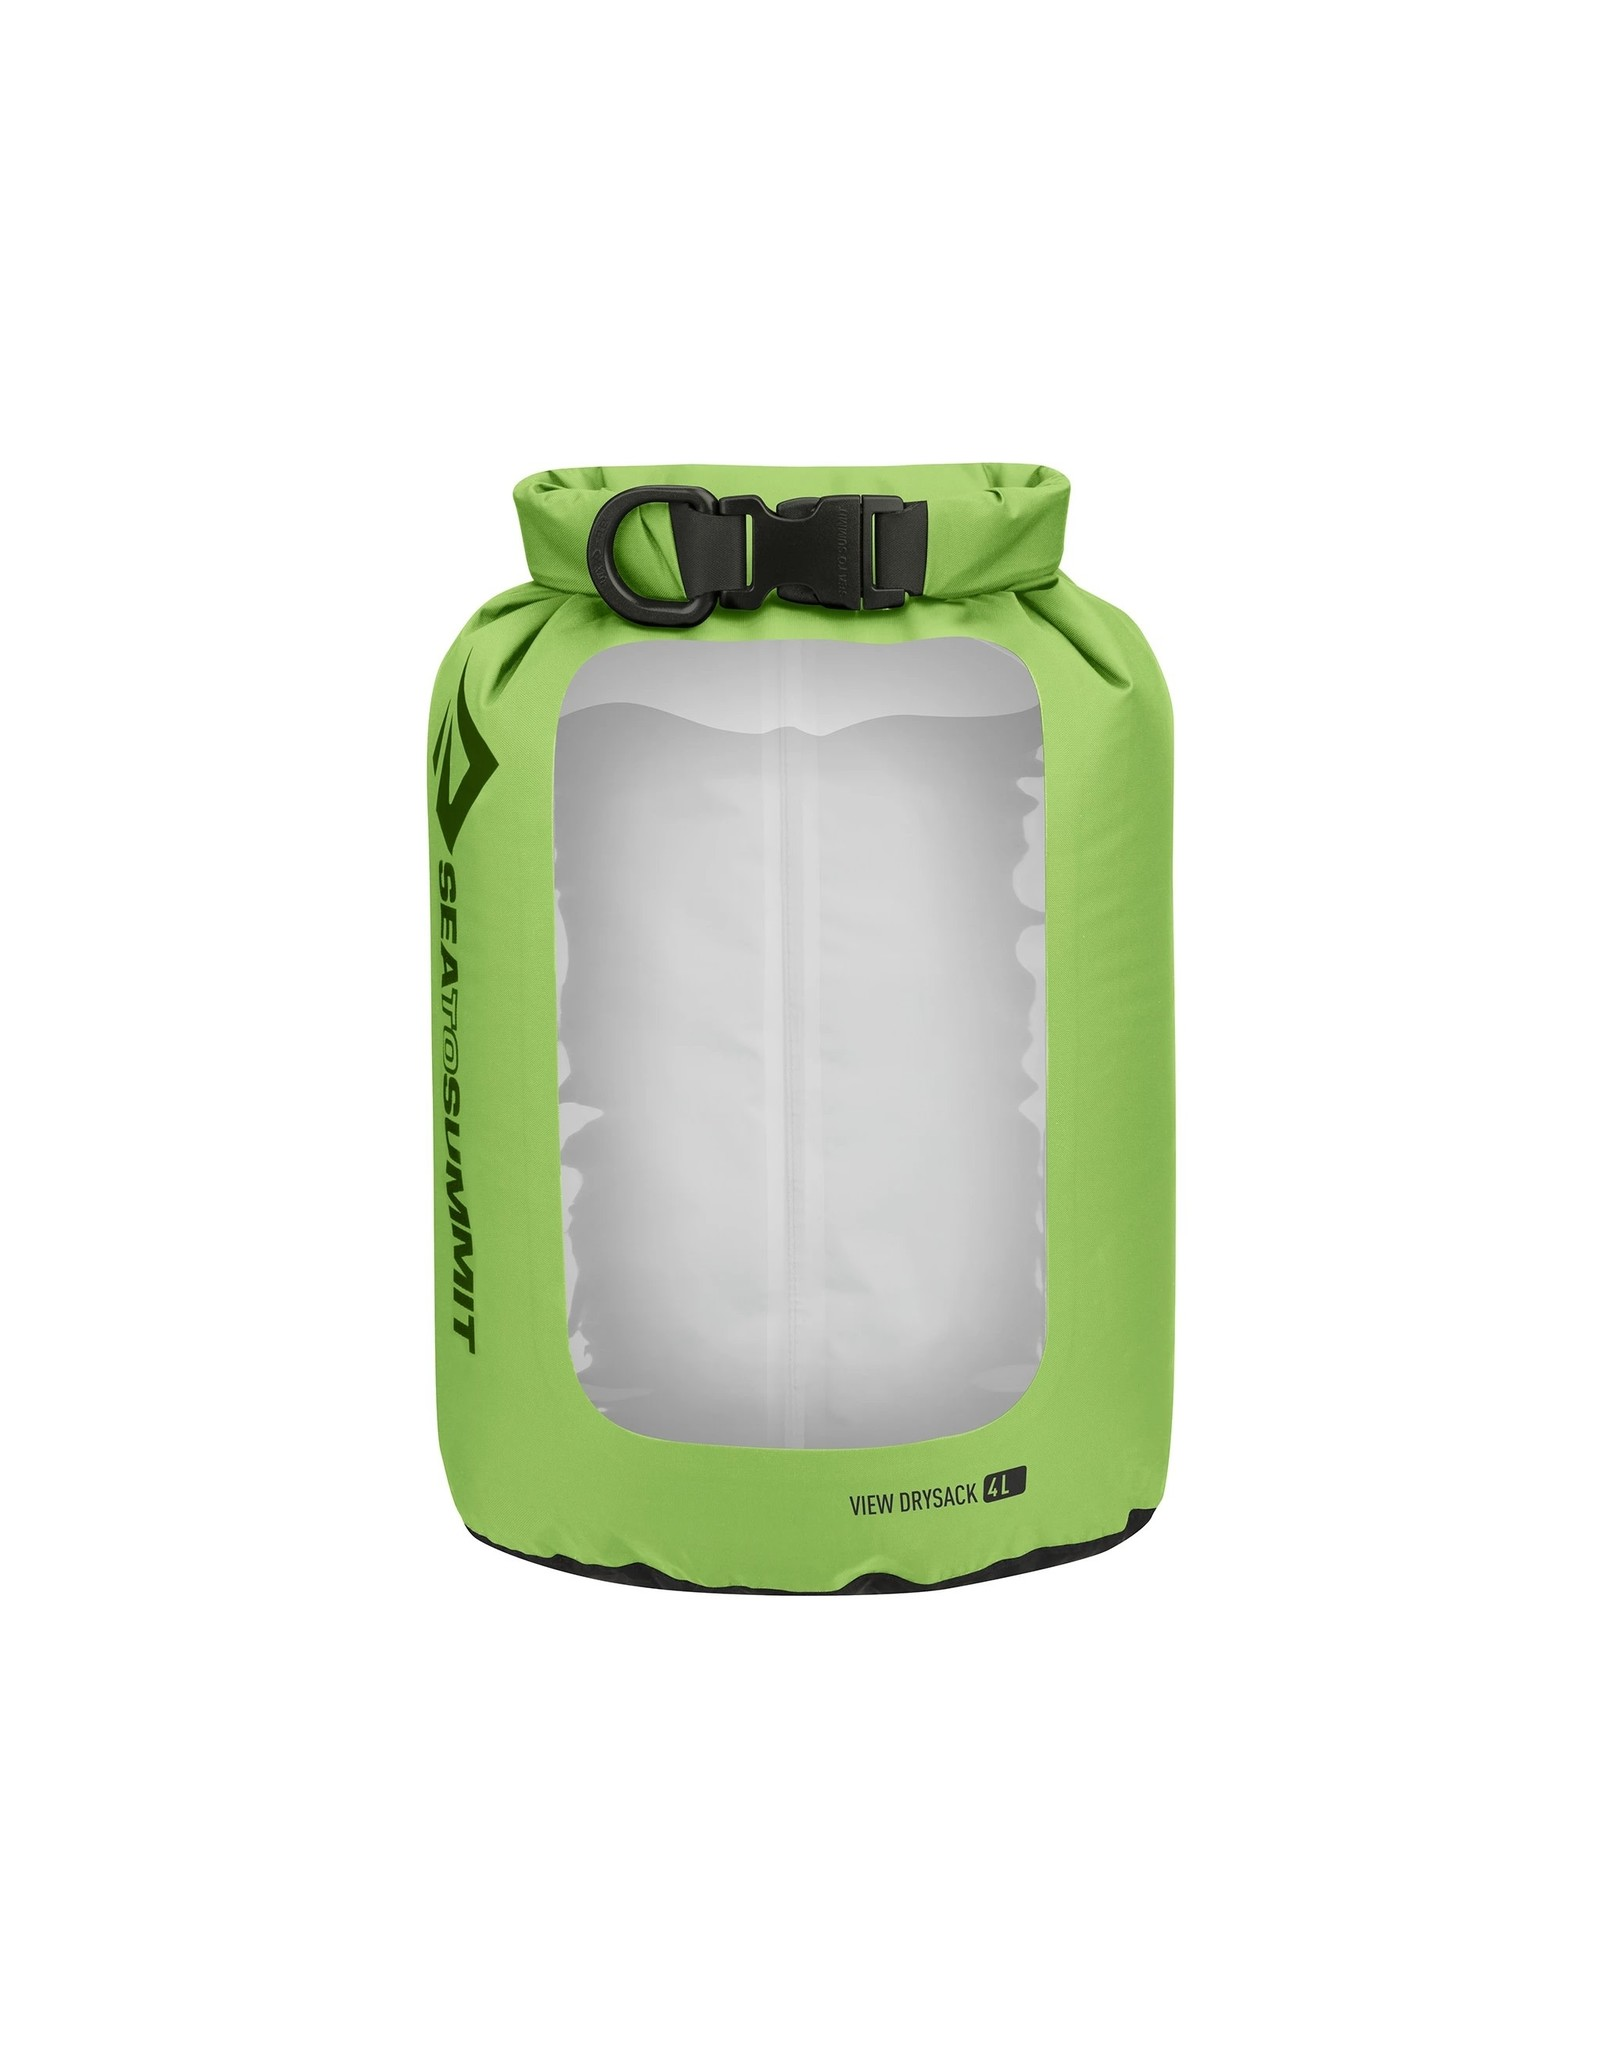 Sea to summit Sea to summit View dry bag